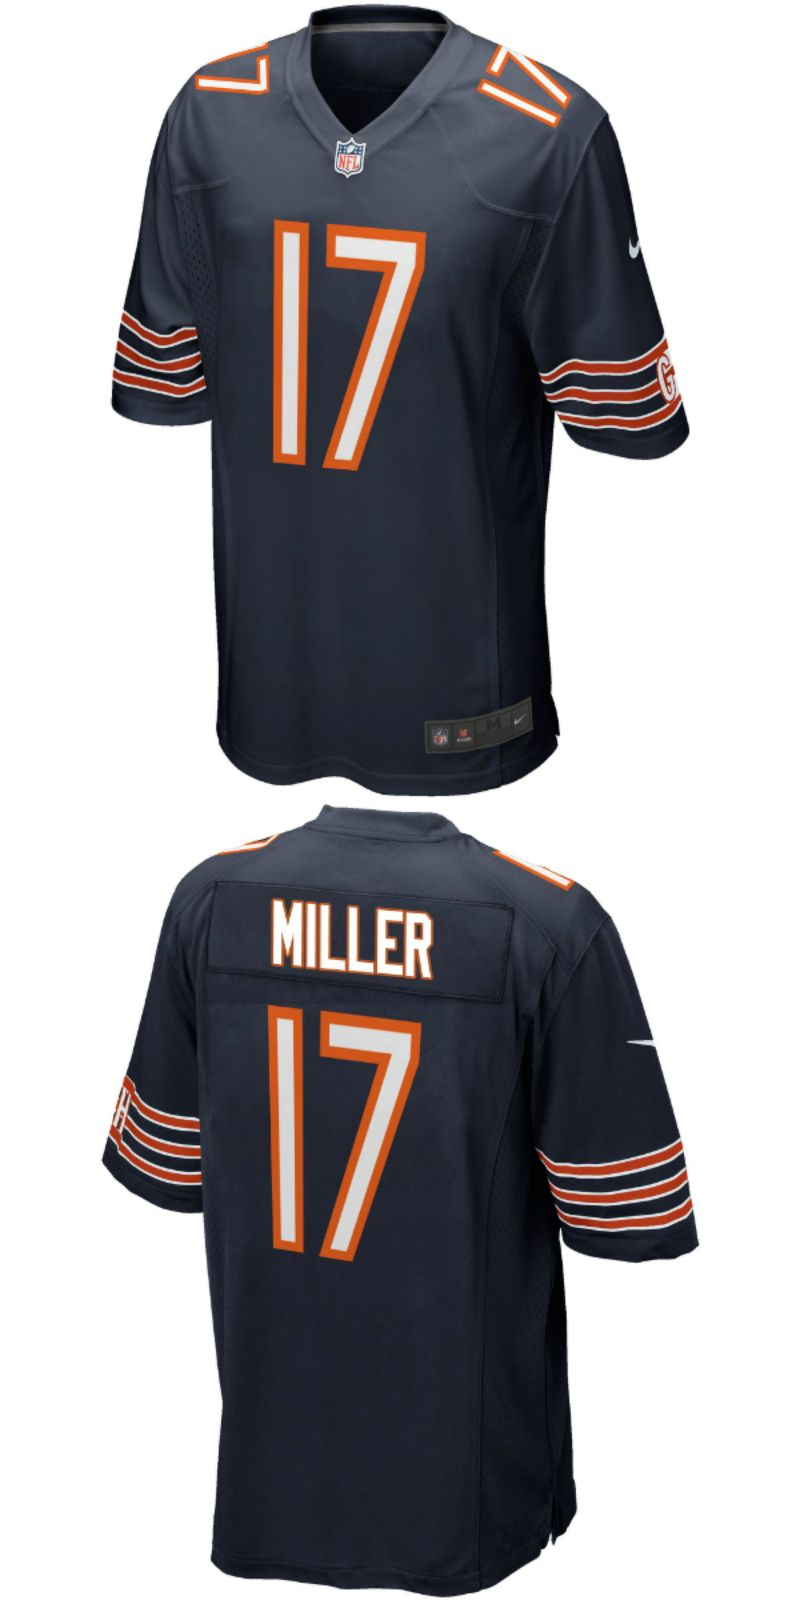 new products 6053a 79783 UP TO 70% OFF. Anthony Miller Chicago Bears Nike 2018 NFL ...